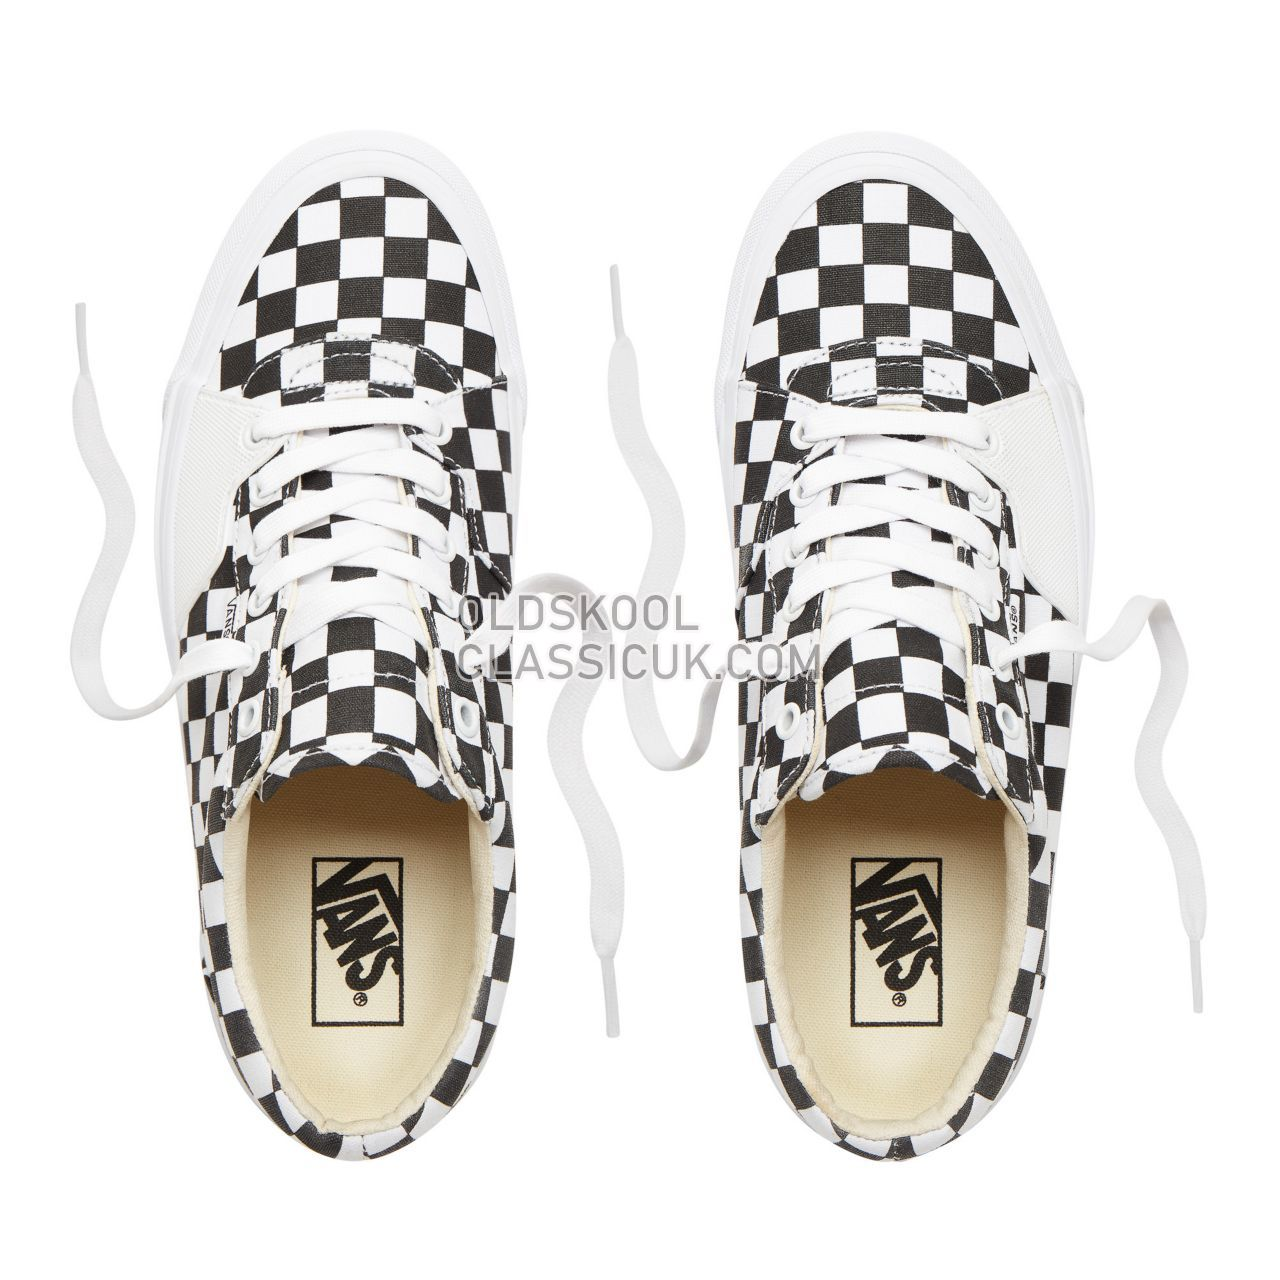 Vans Checkerboard Style 205 Sneakers Mens (Checkerboard) Black/True White VN0A3DPT5GU Shoes